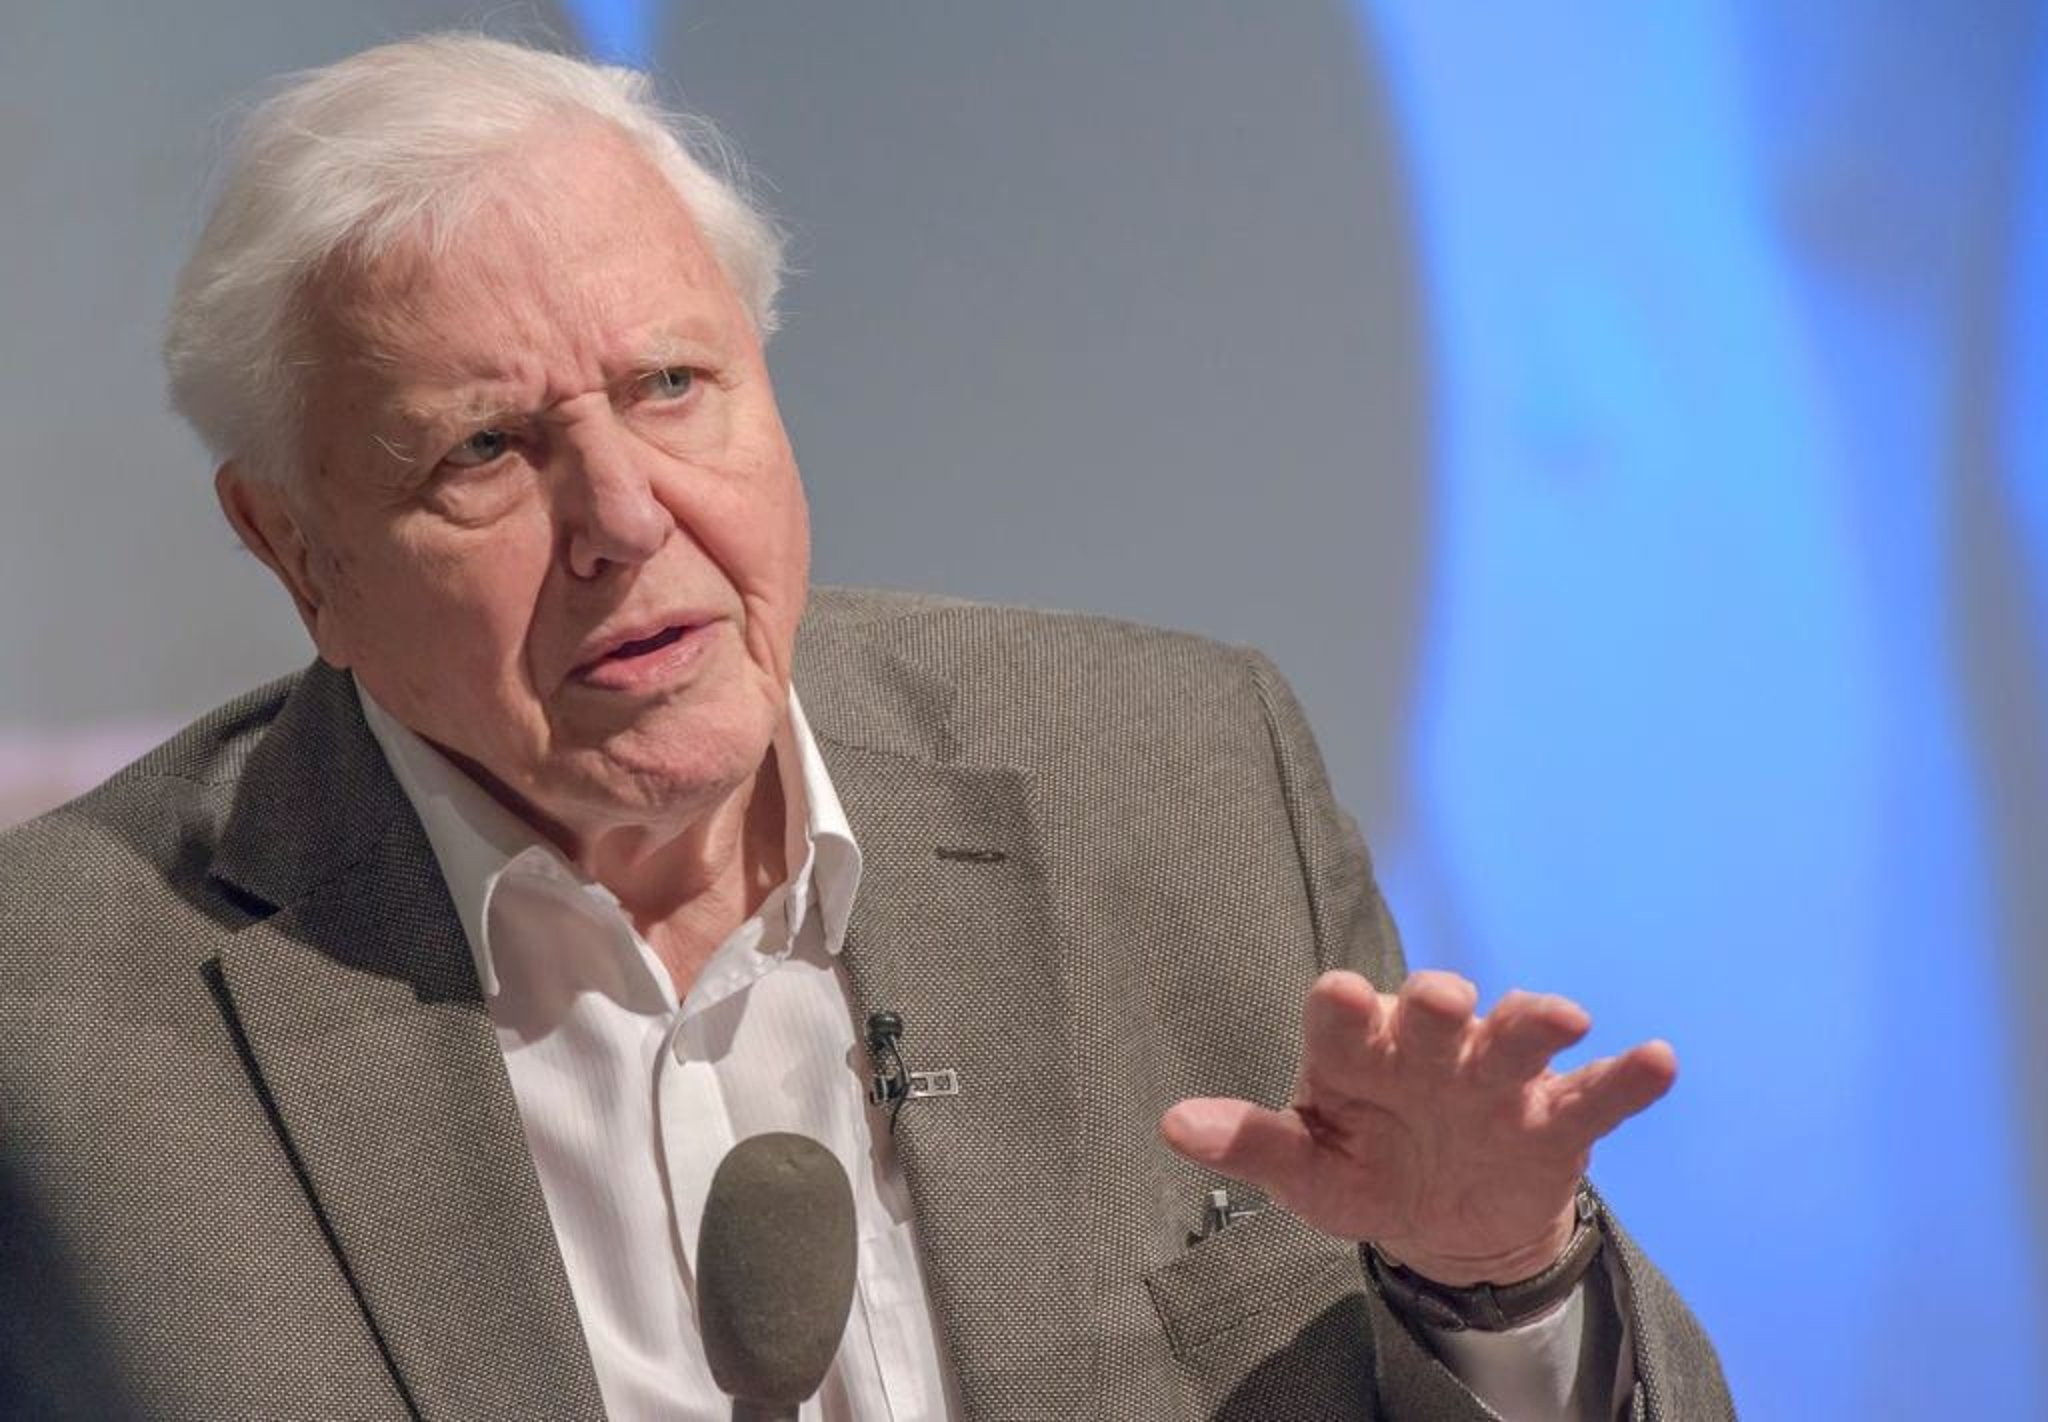 Sir David Attenborough warns that G7 leaders fact some of the most important decisions in human history